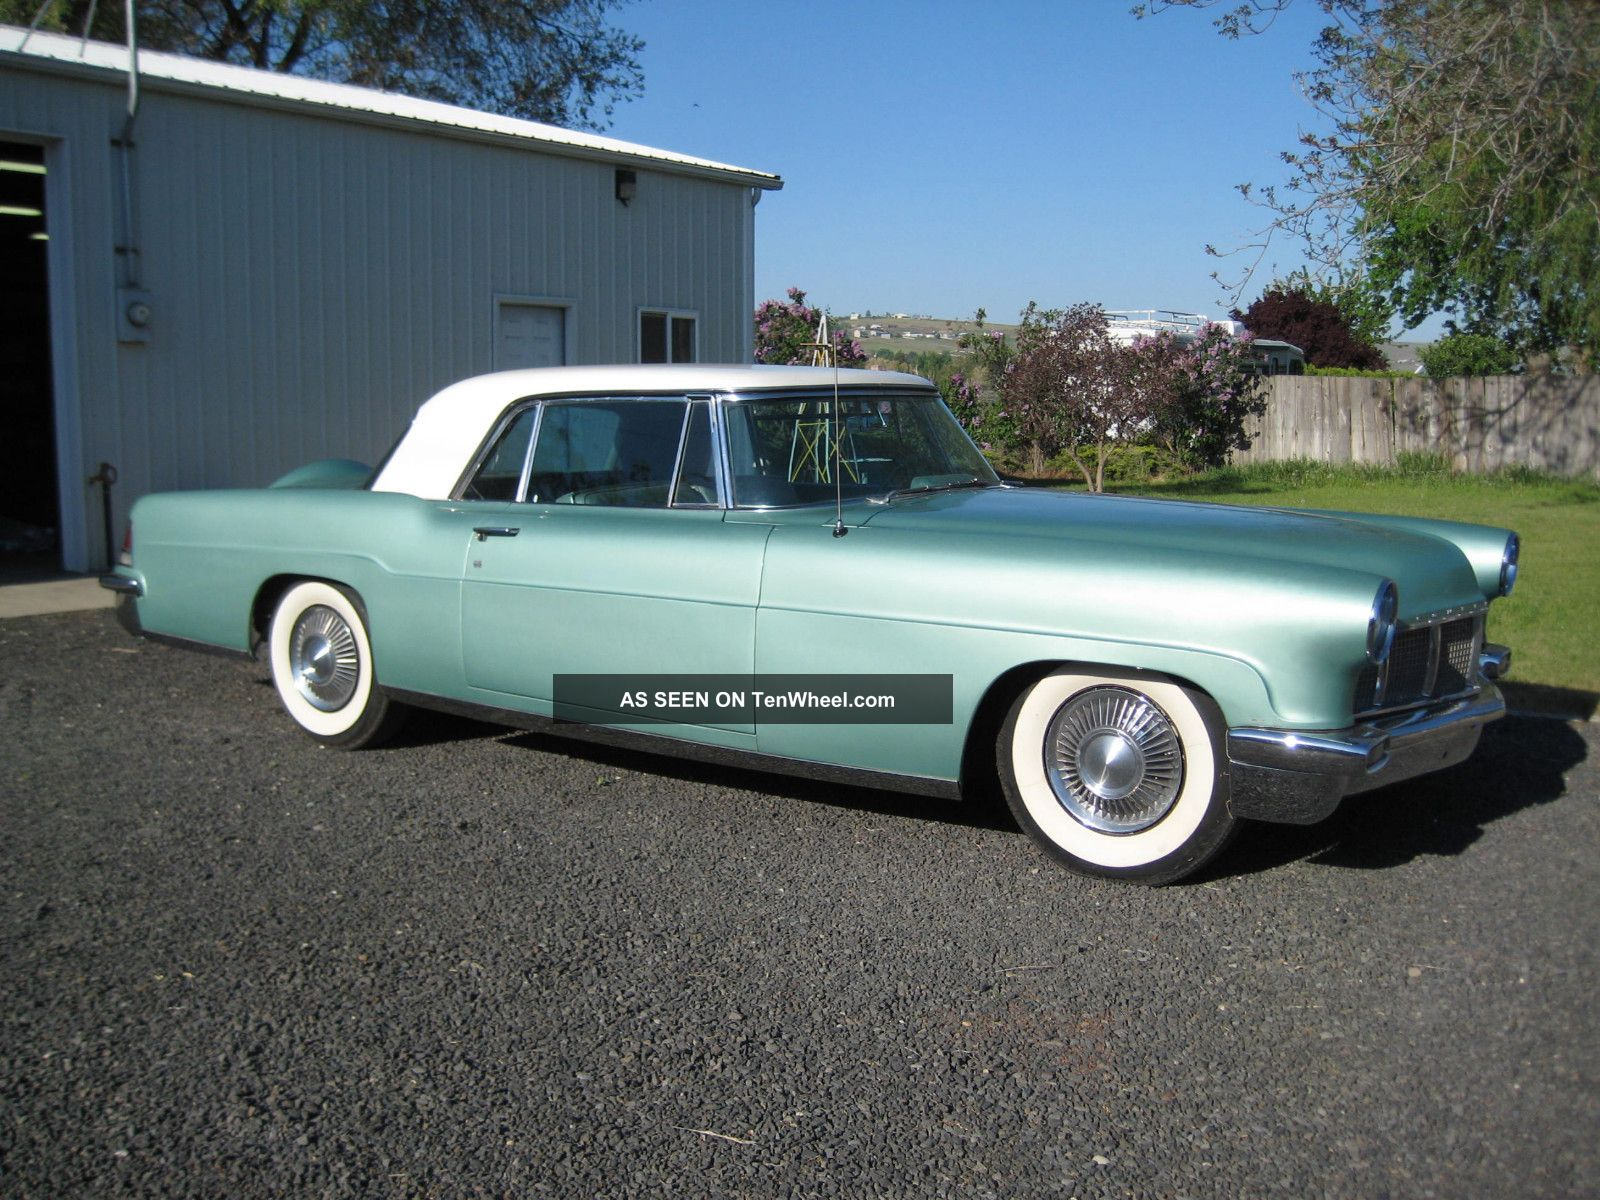 1957 Lincoln Continental Mark Ii Good Driver,  Restor,  Clasic Look ' S, Mark Series photo